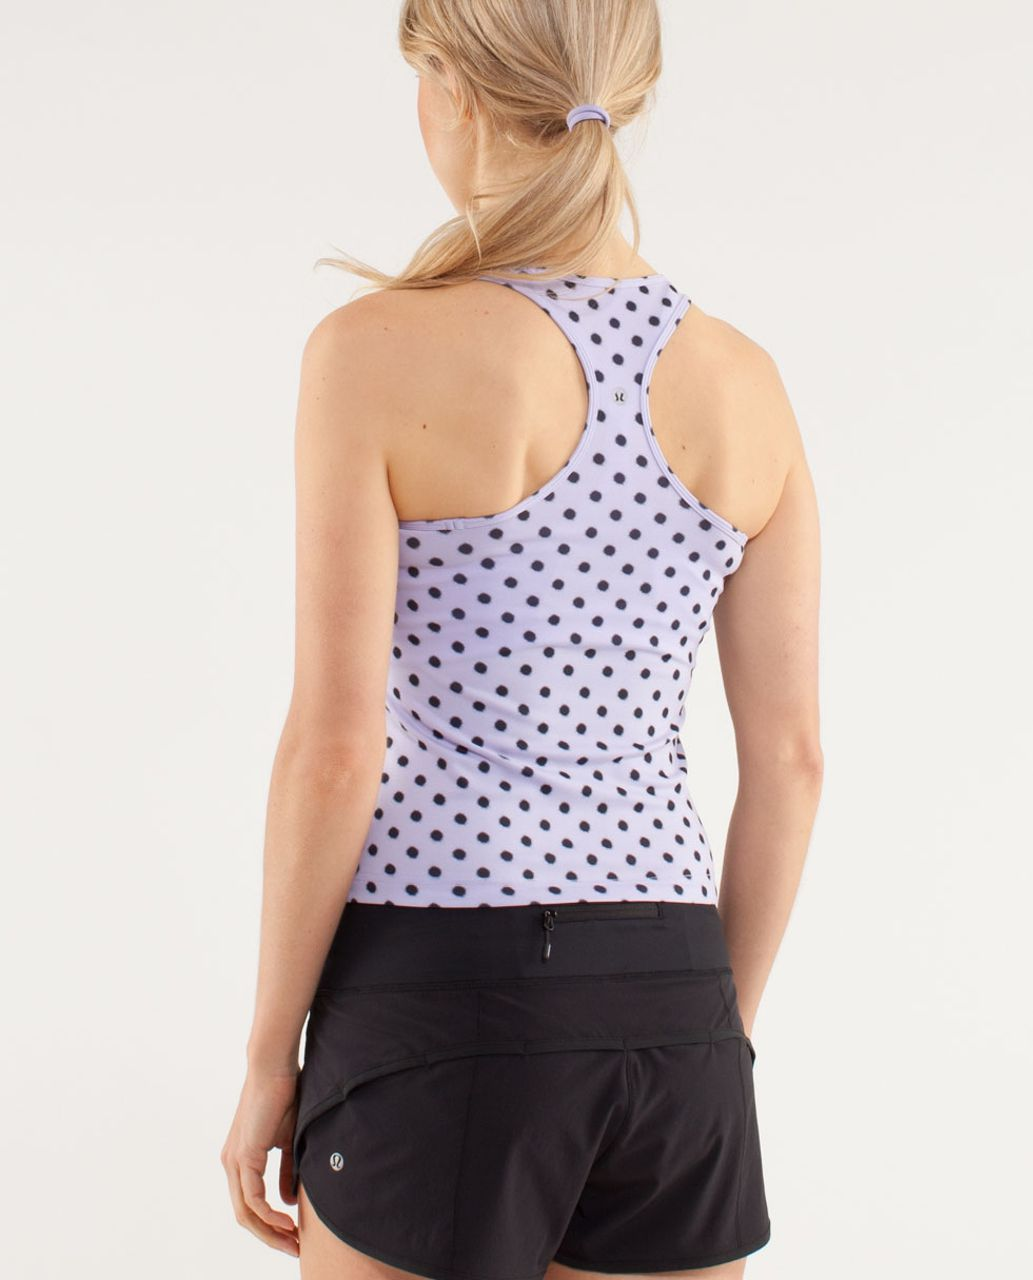 Lululemon Cool Racerback *Racing Length - High Noon Dot Lilac / Black